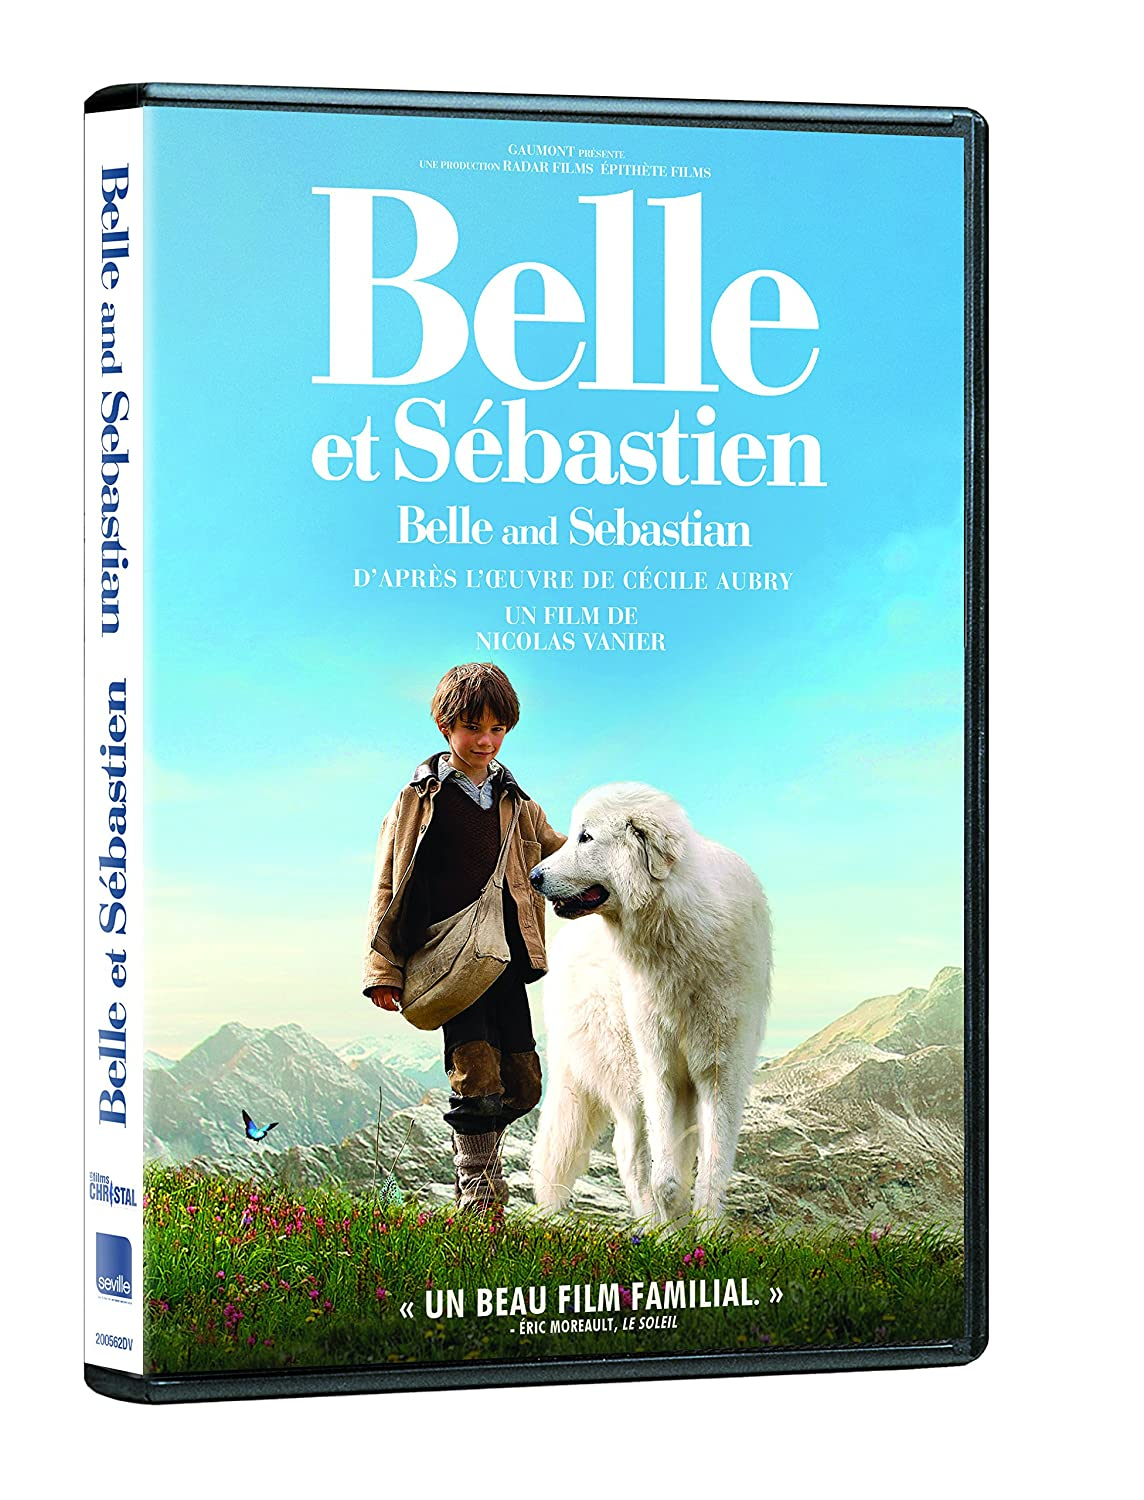 Belle and Sebastian / Belle et Sebastien (Bilingual) tba Seville Pictures Action & Adventure